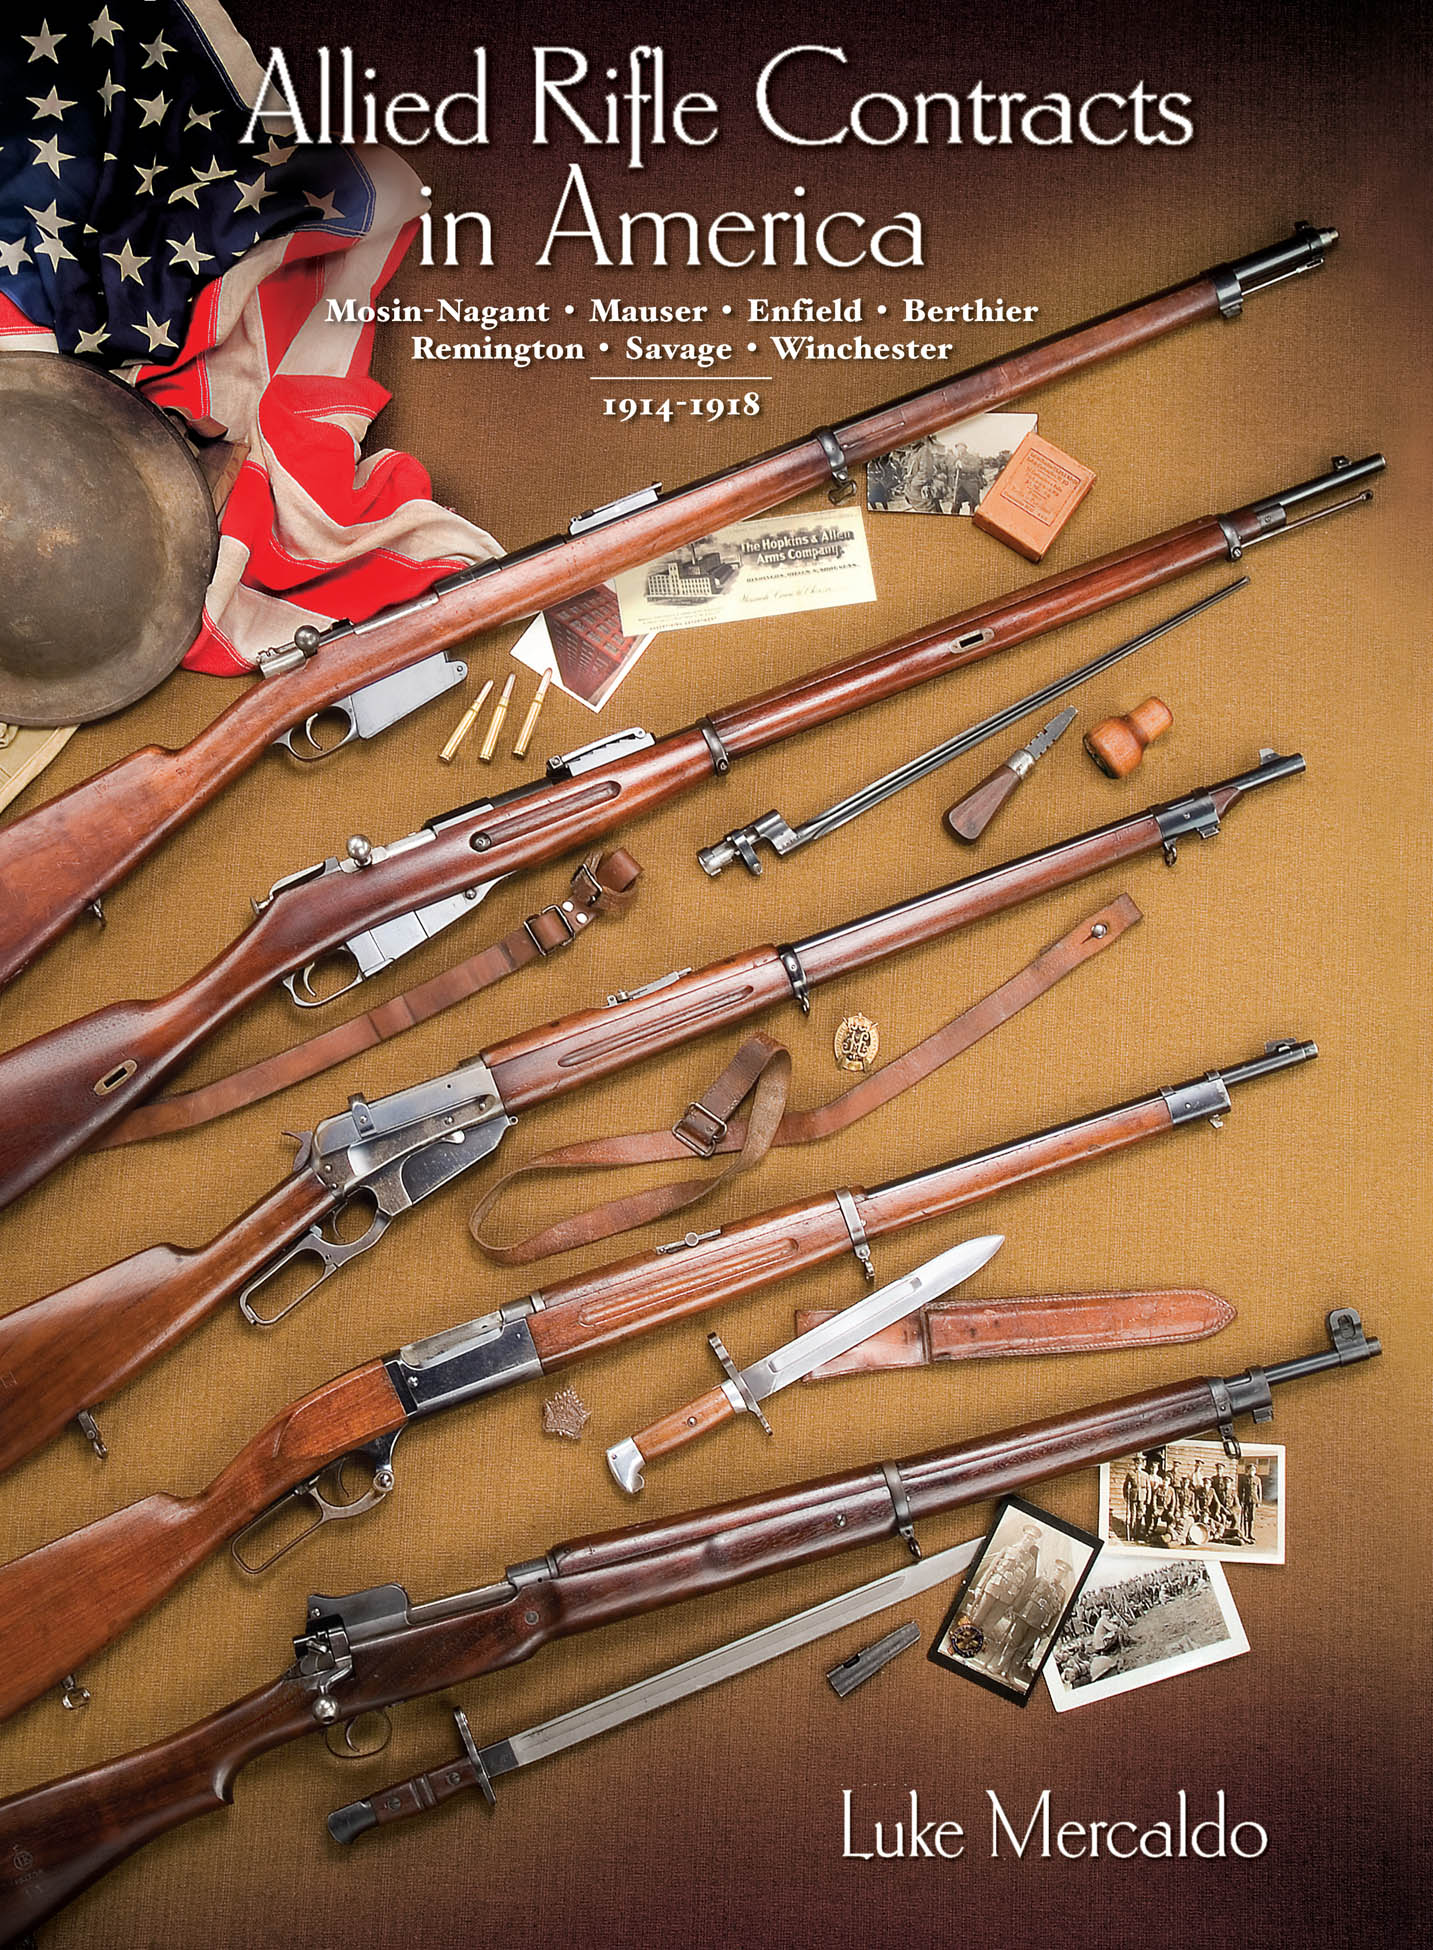 Allied Rifle Contracts in America, Mosin Nagant